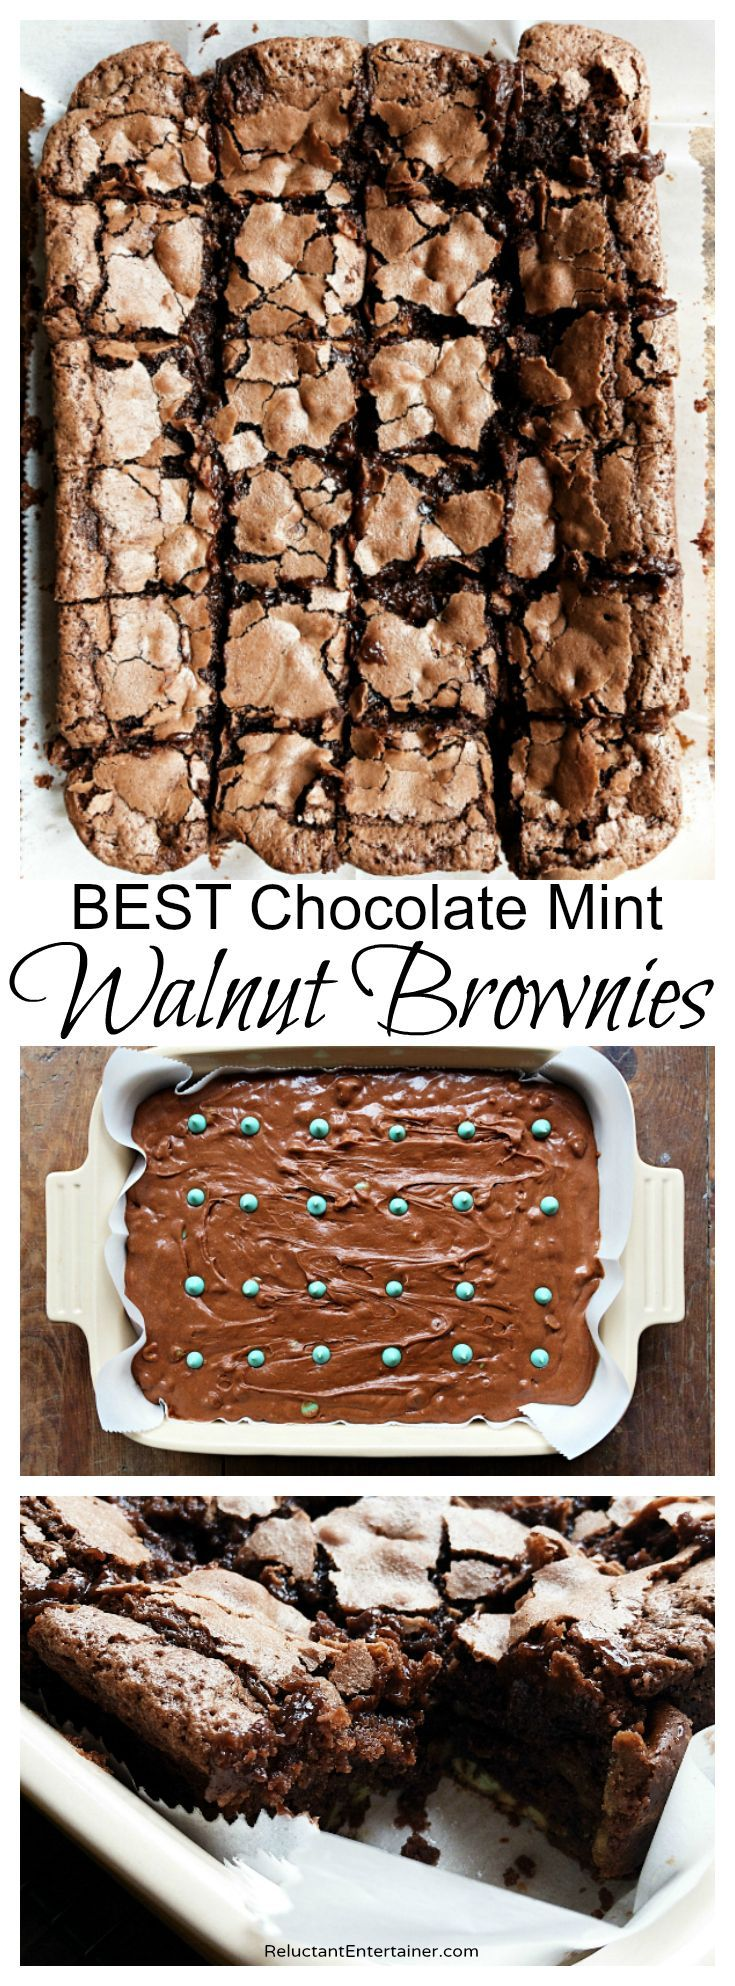 BEST Chocolate Mint Walnut Brownies